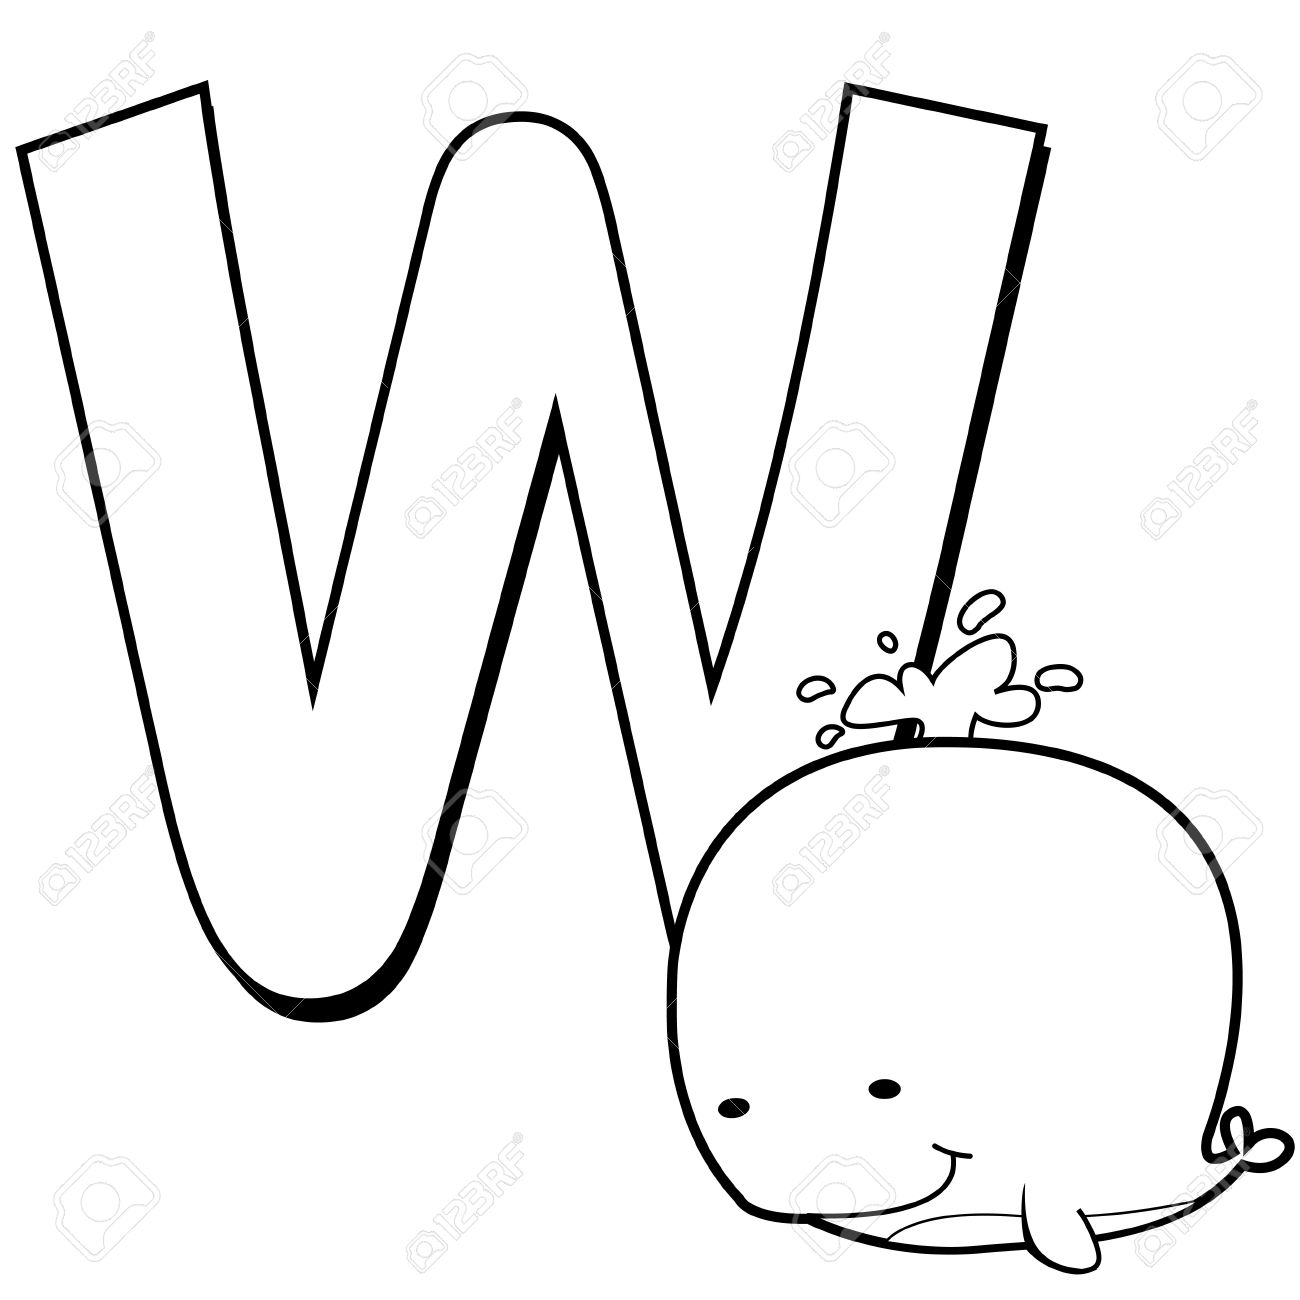 Coloring Alphabet For Kids W With Whale Stock Vector Whale